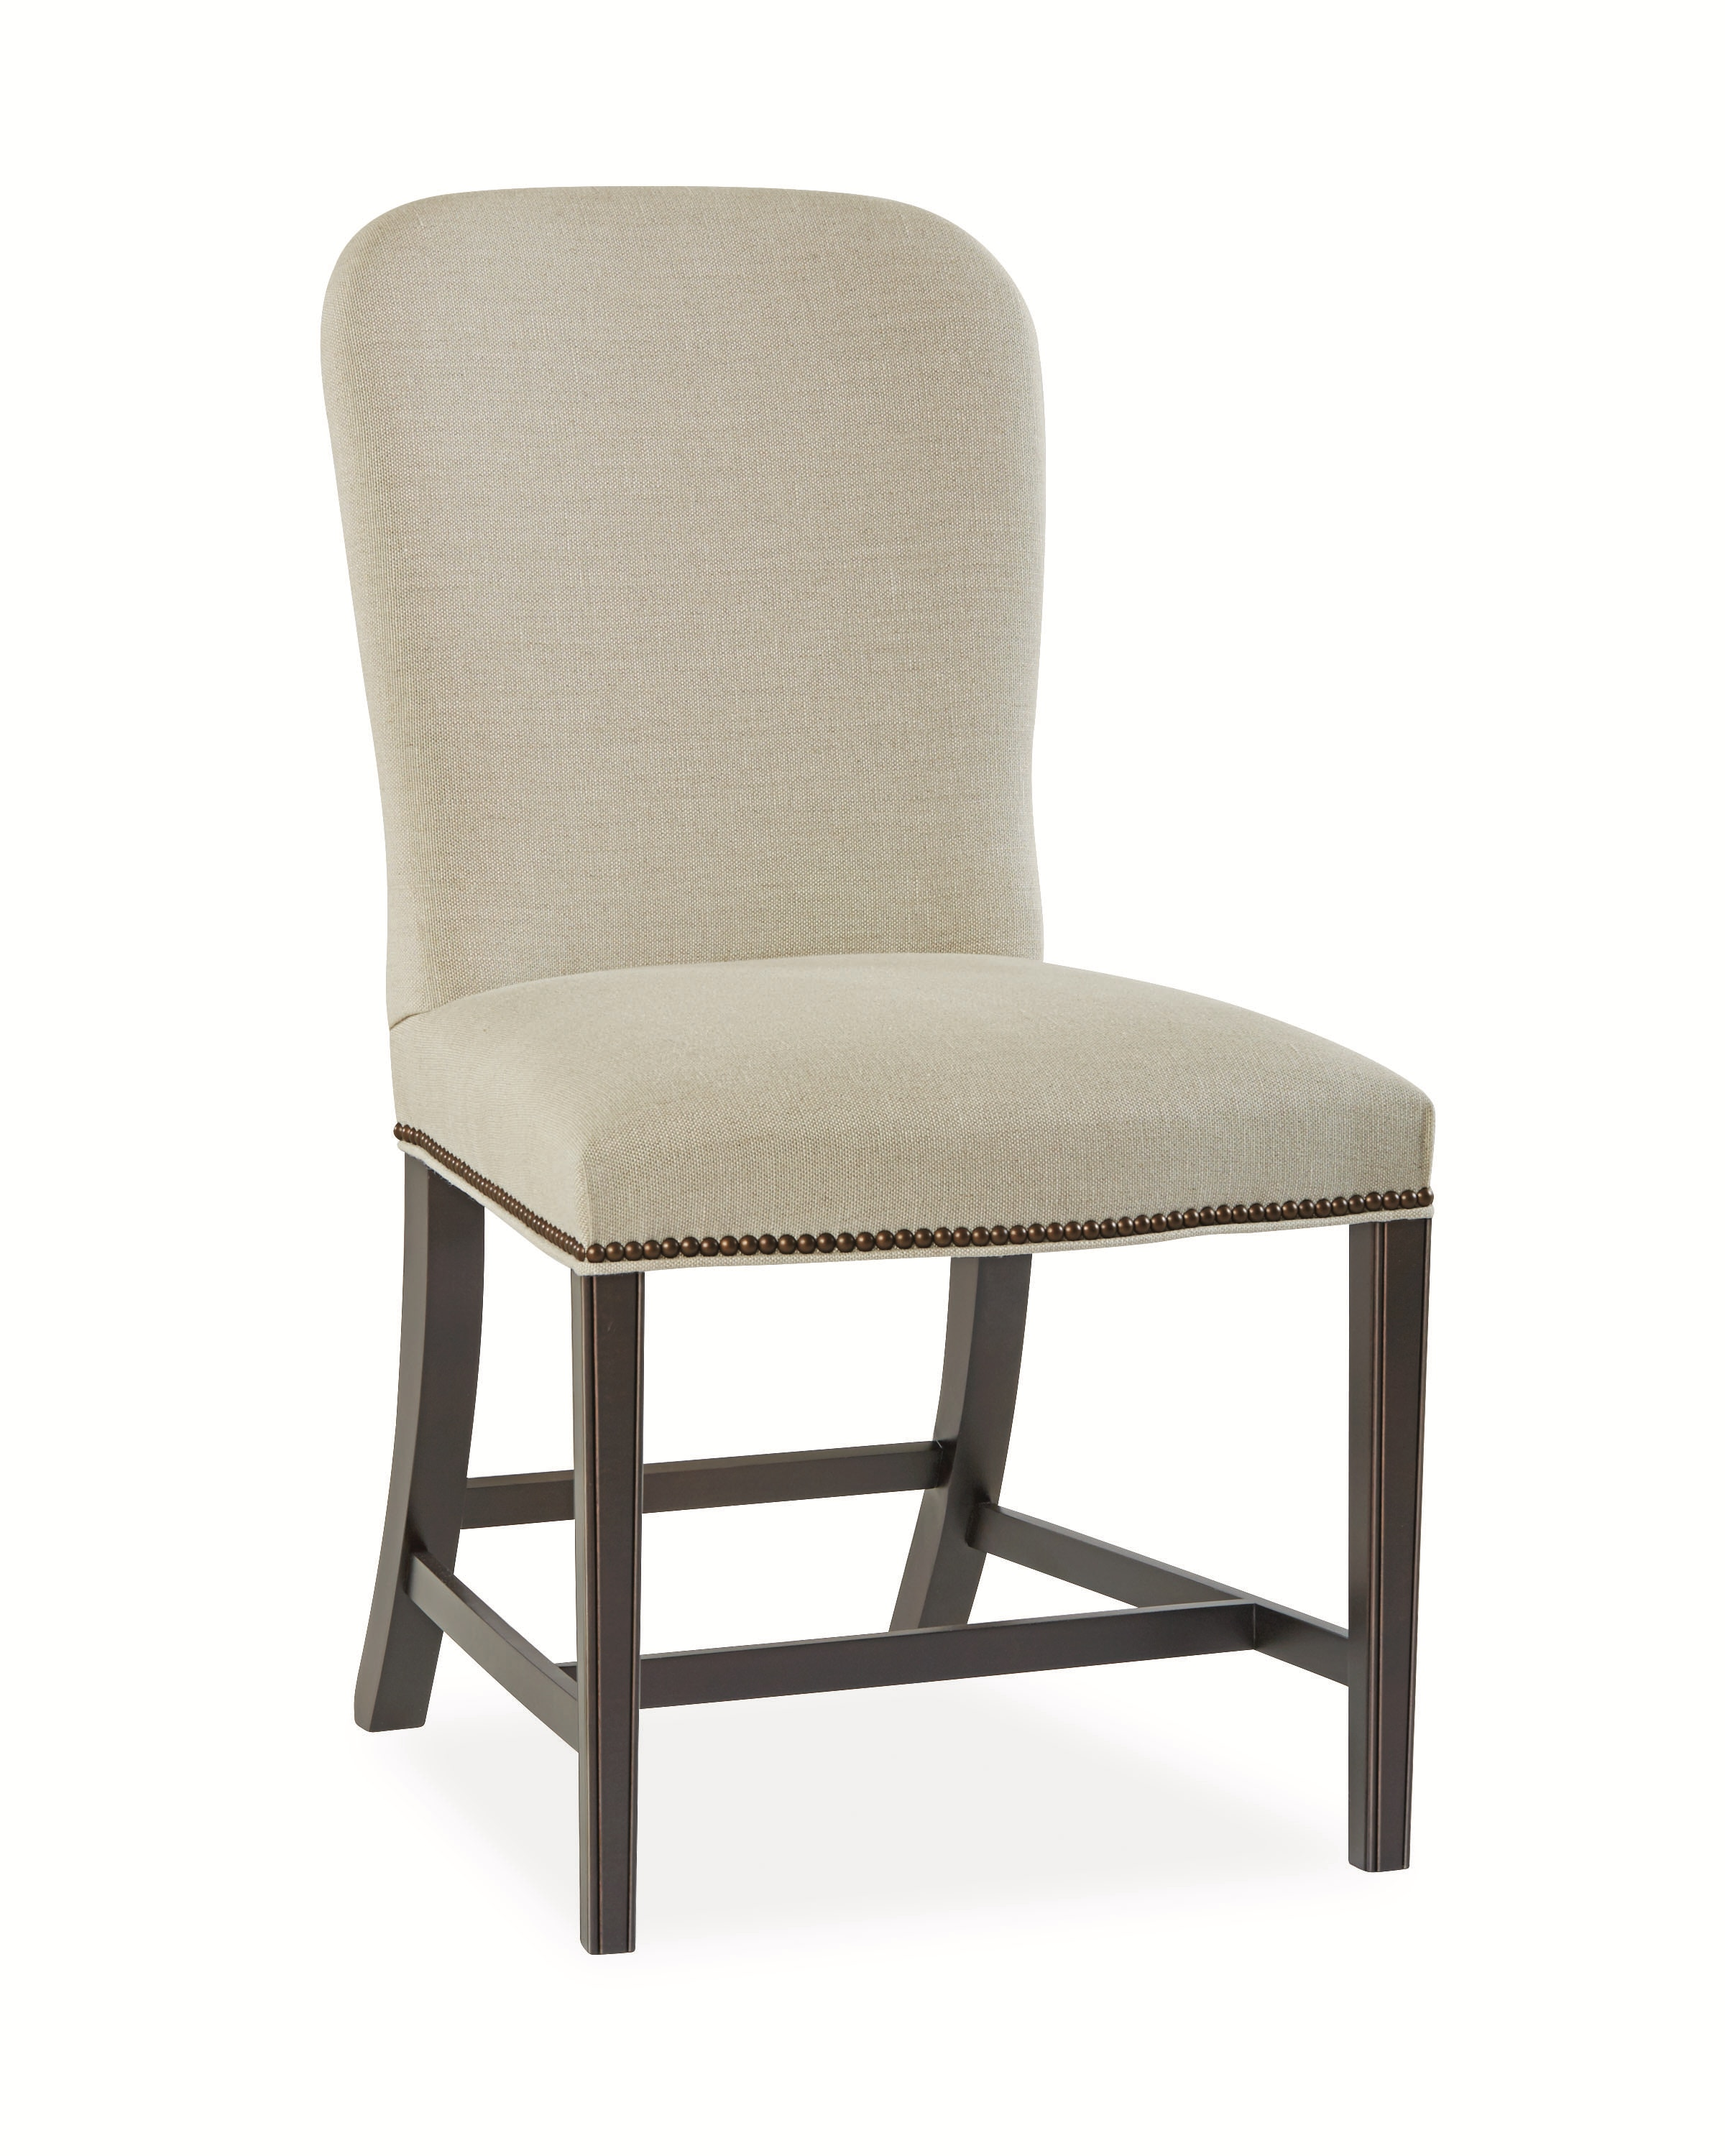 Lee Industries Dining Chair 5583 01 ...